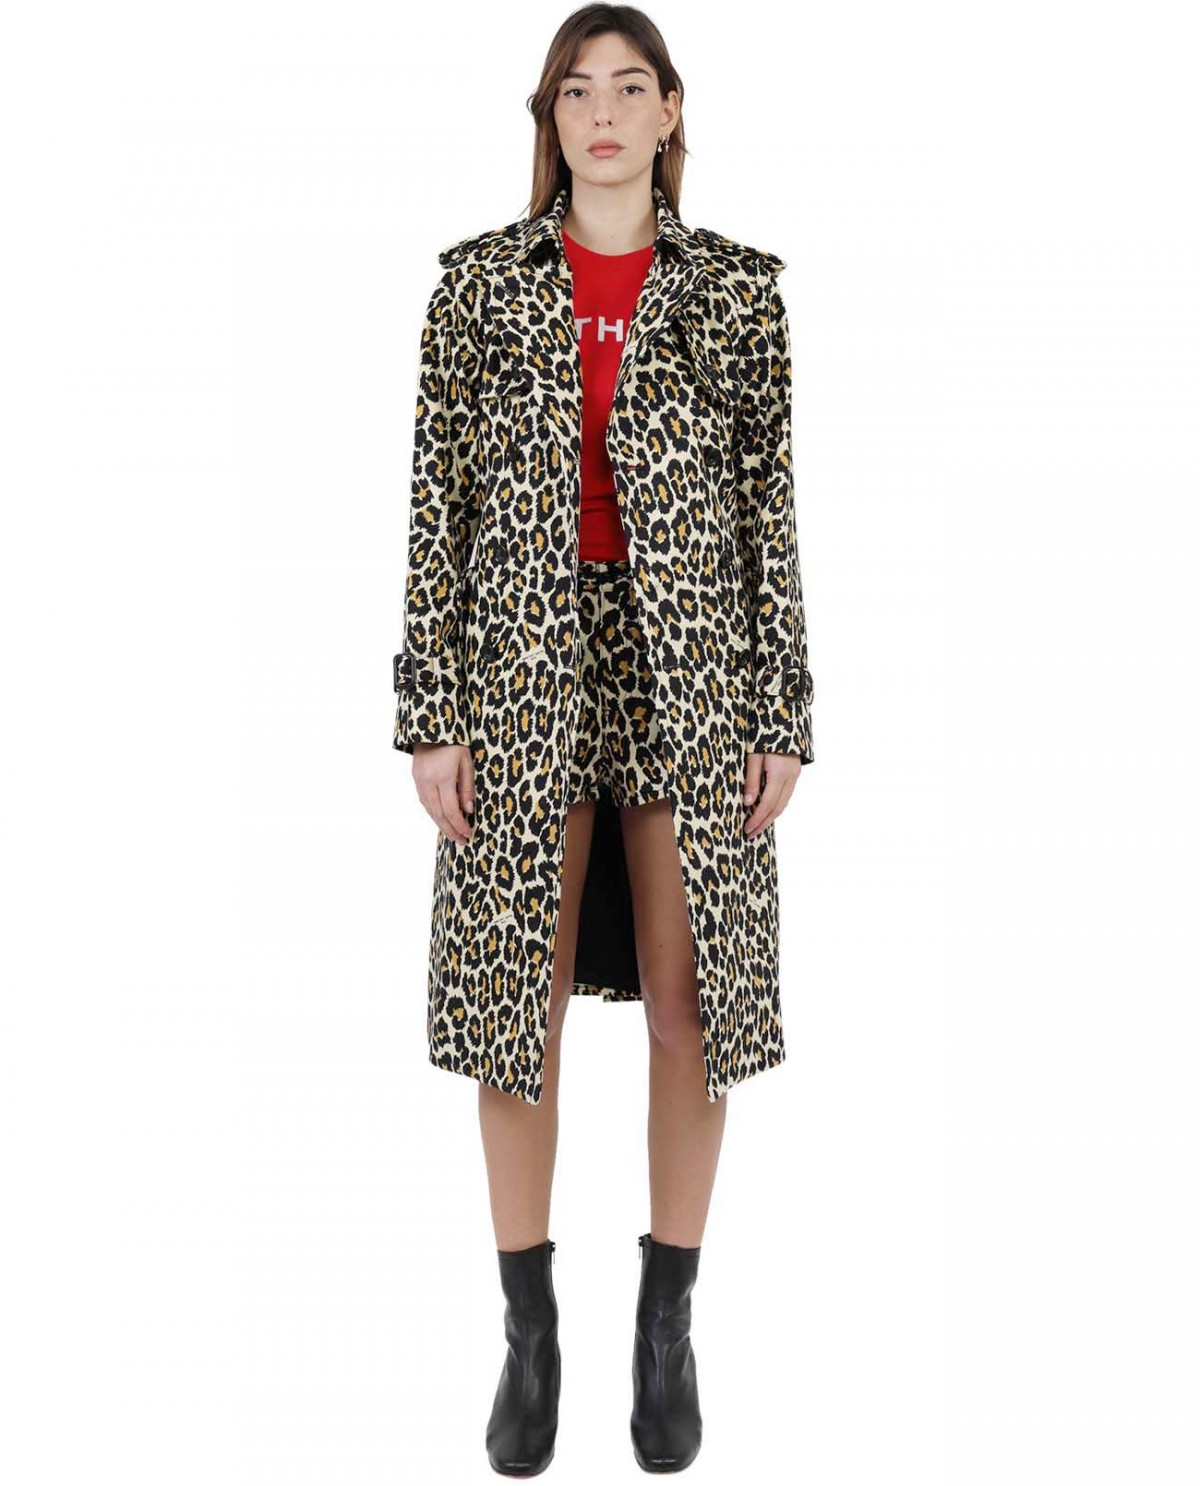 The Marc Jacobs leopard Trench